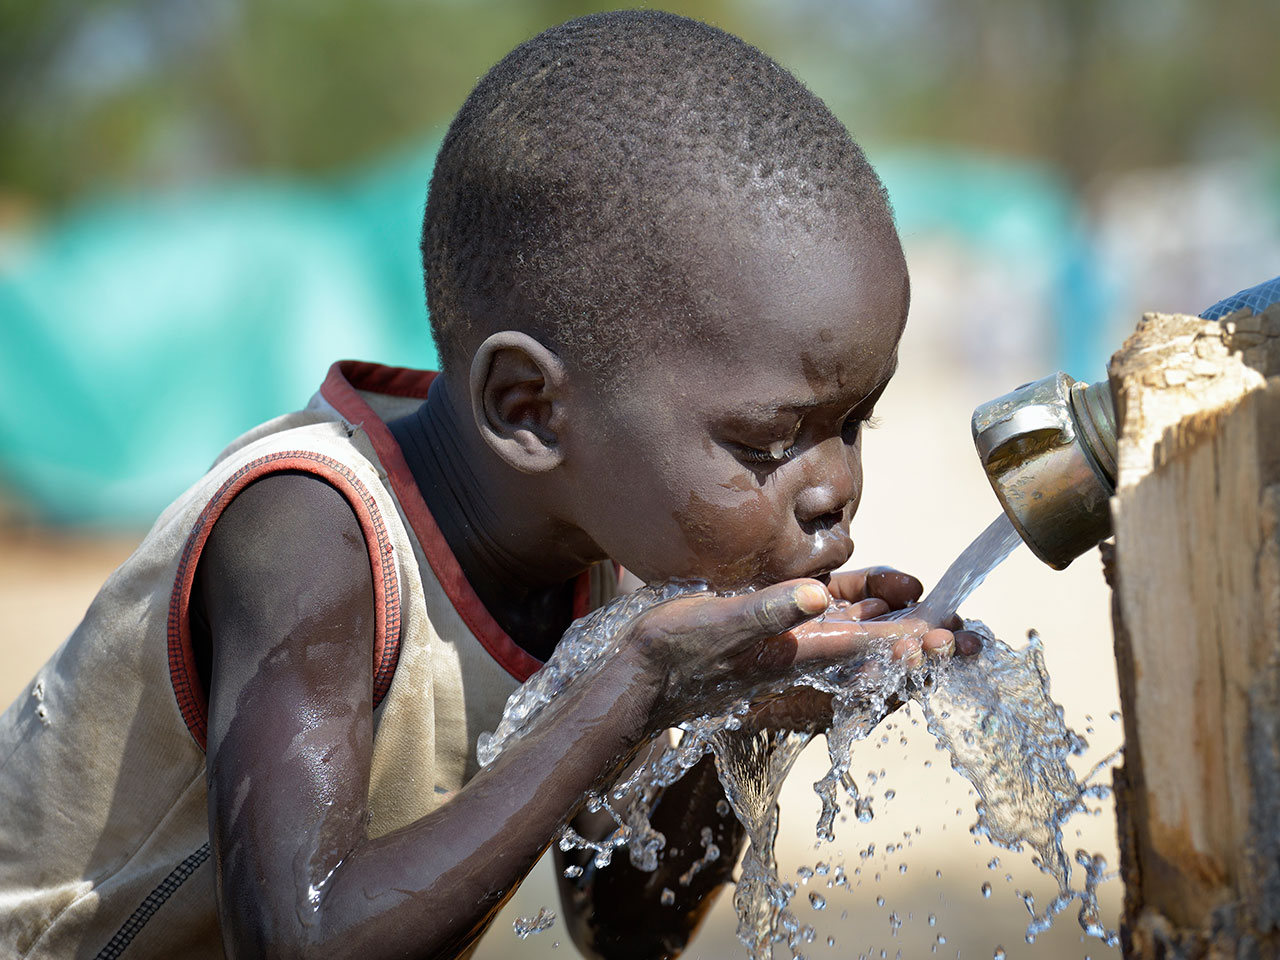 boy drinks water